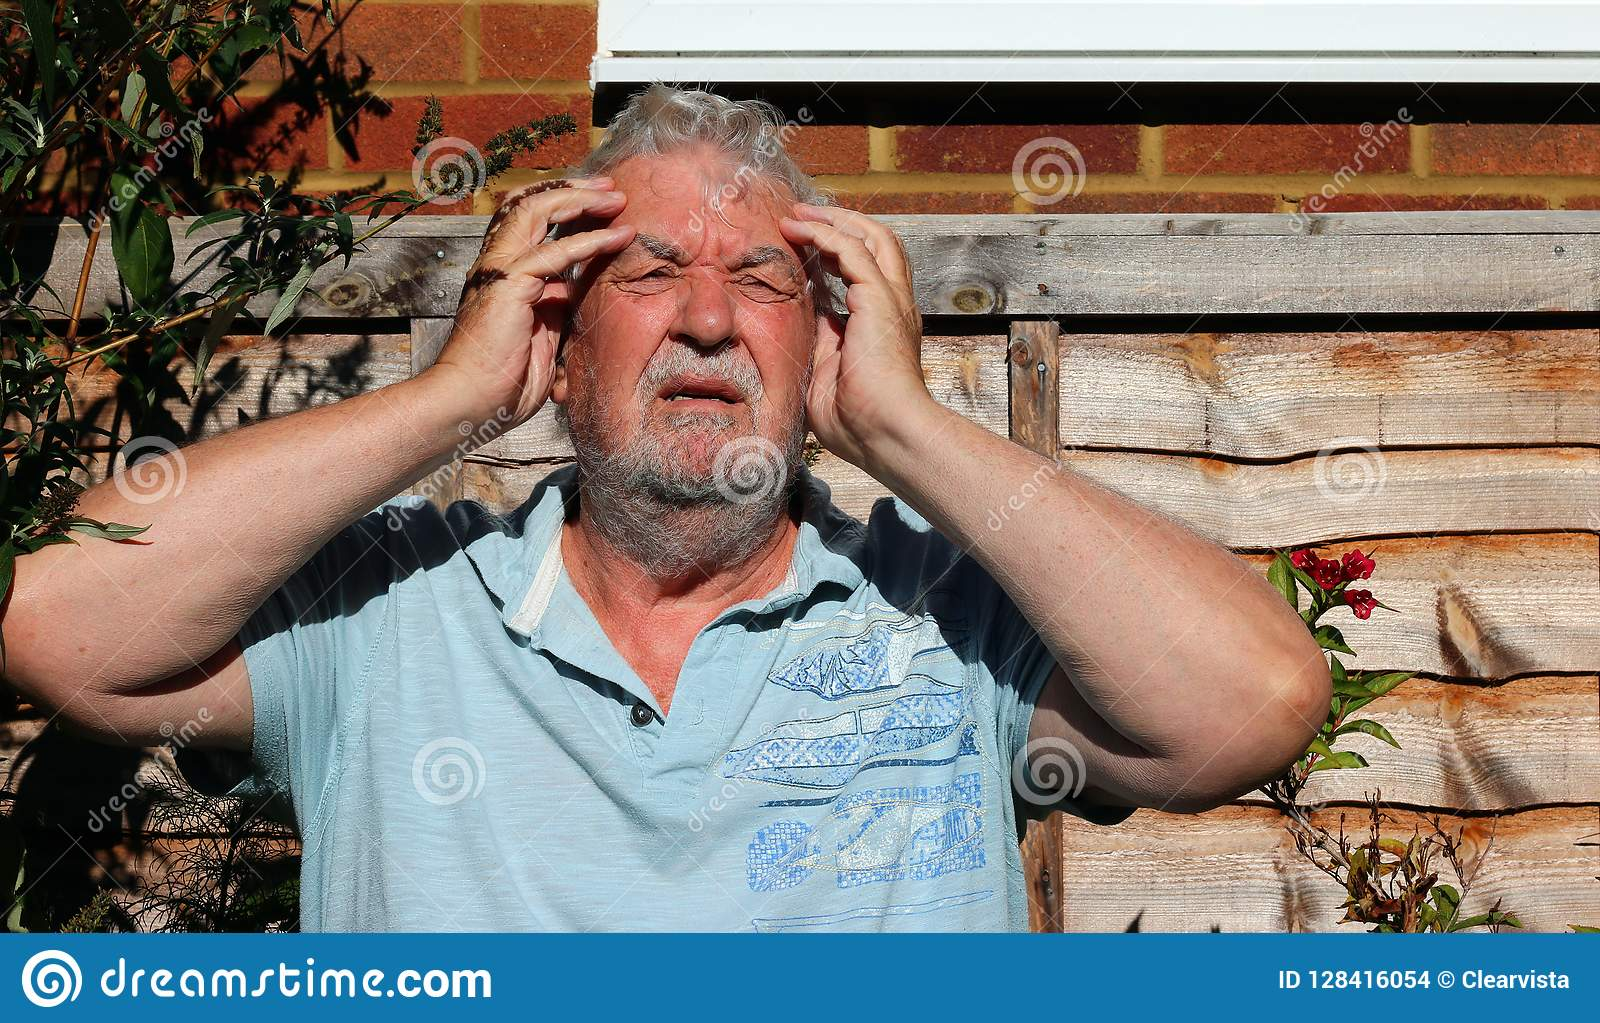 Headache or migraine. Man holding his head in pain.